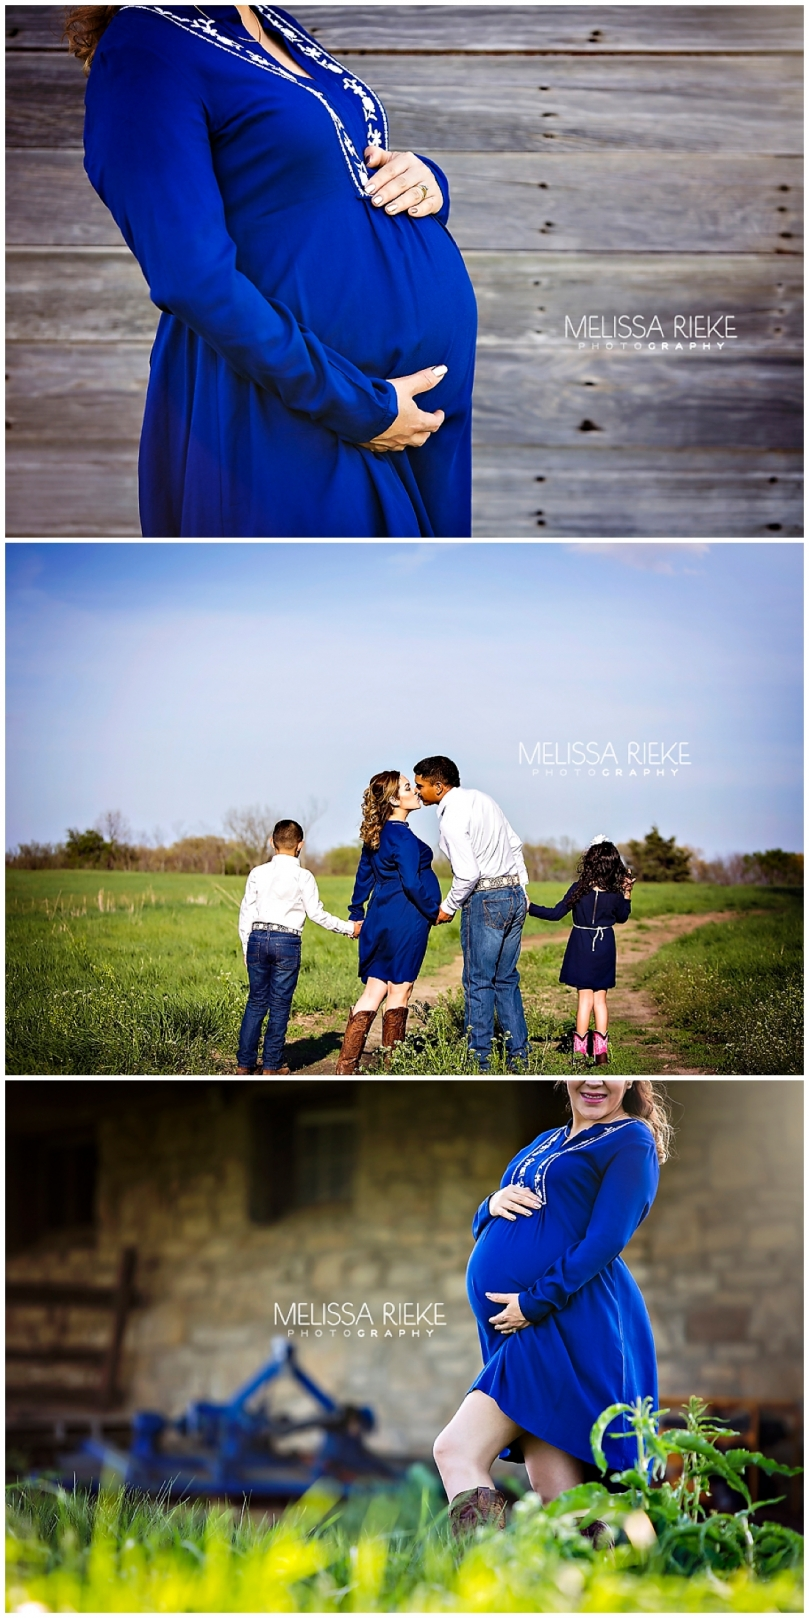 Beautiful Outdoor Farm Maternity Session Gowns Kansas City What To Wear Family Pregnancy